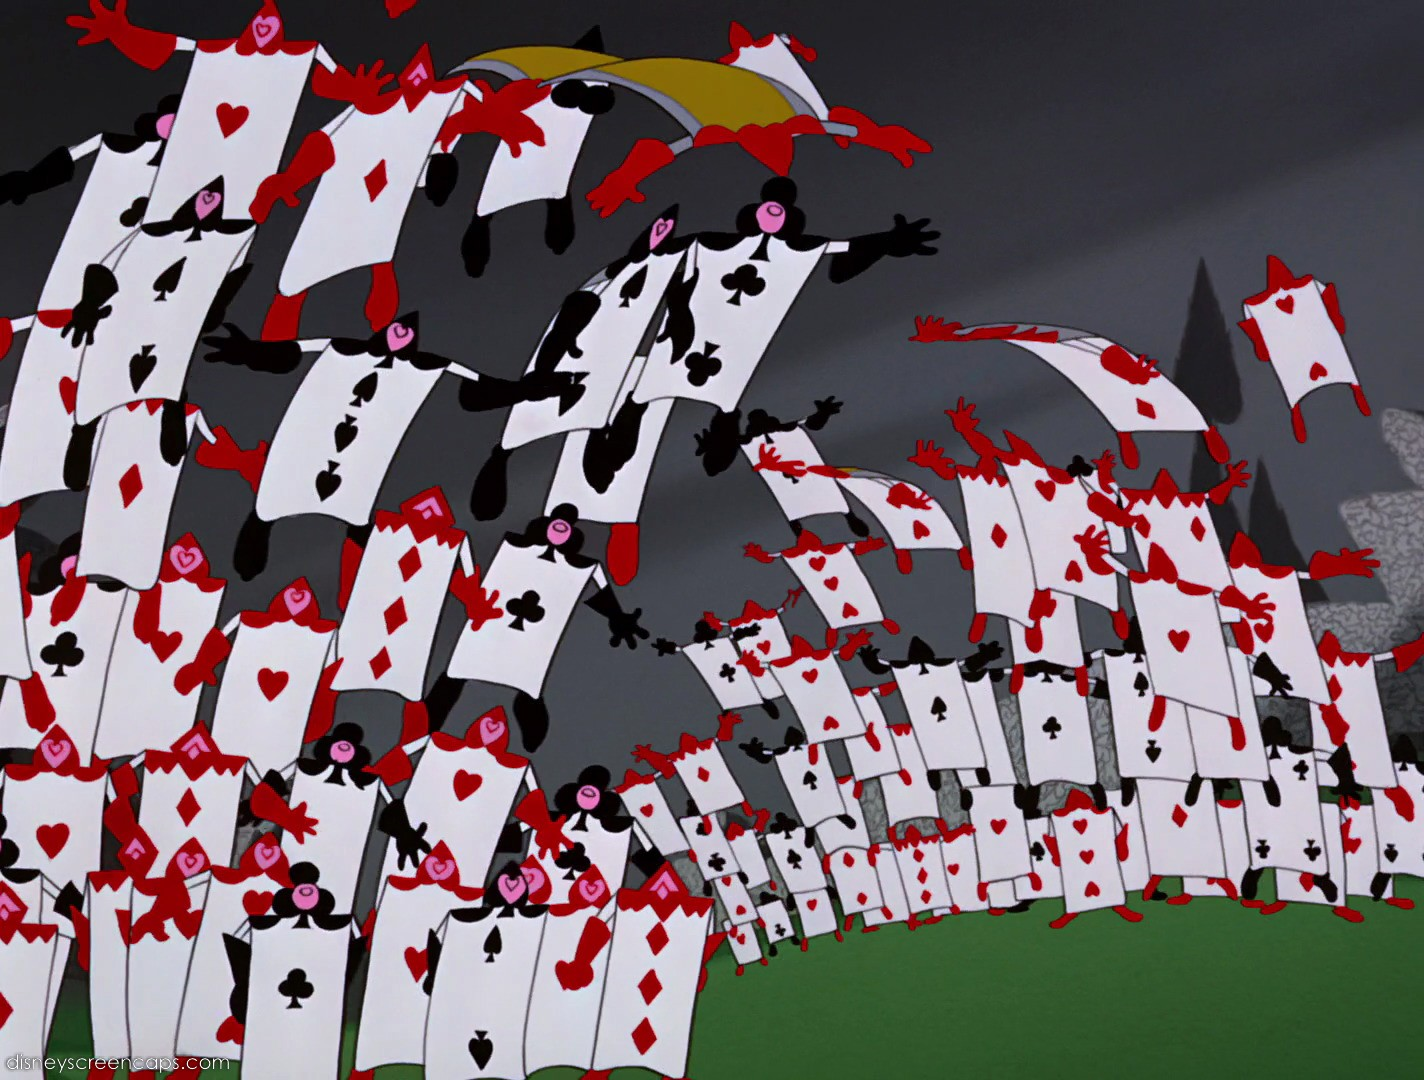 The Playing Cards | Alice in Wonderland Wiki | FANDOM powered by Wikia